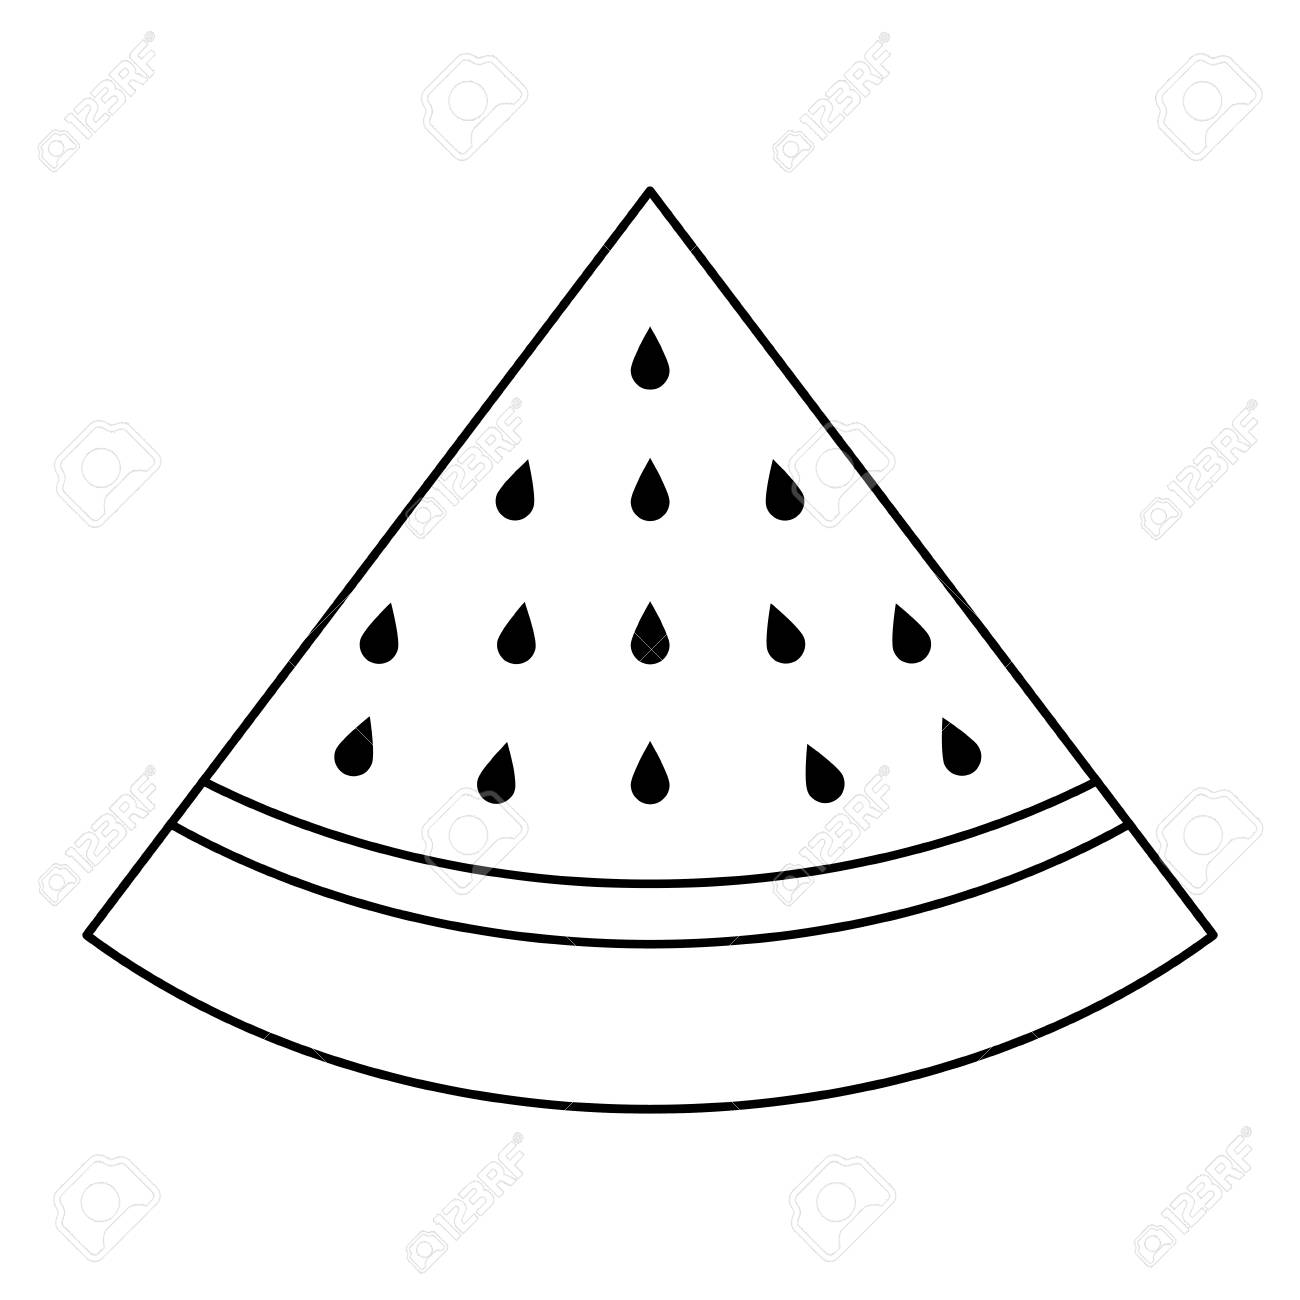 Slice Of Watermelon Outline Design Royalty Free Cliparts Vectors And Stock Illustration Image 93538516